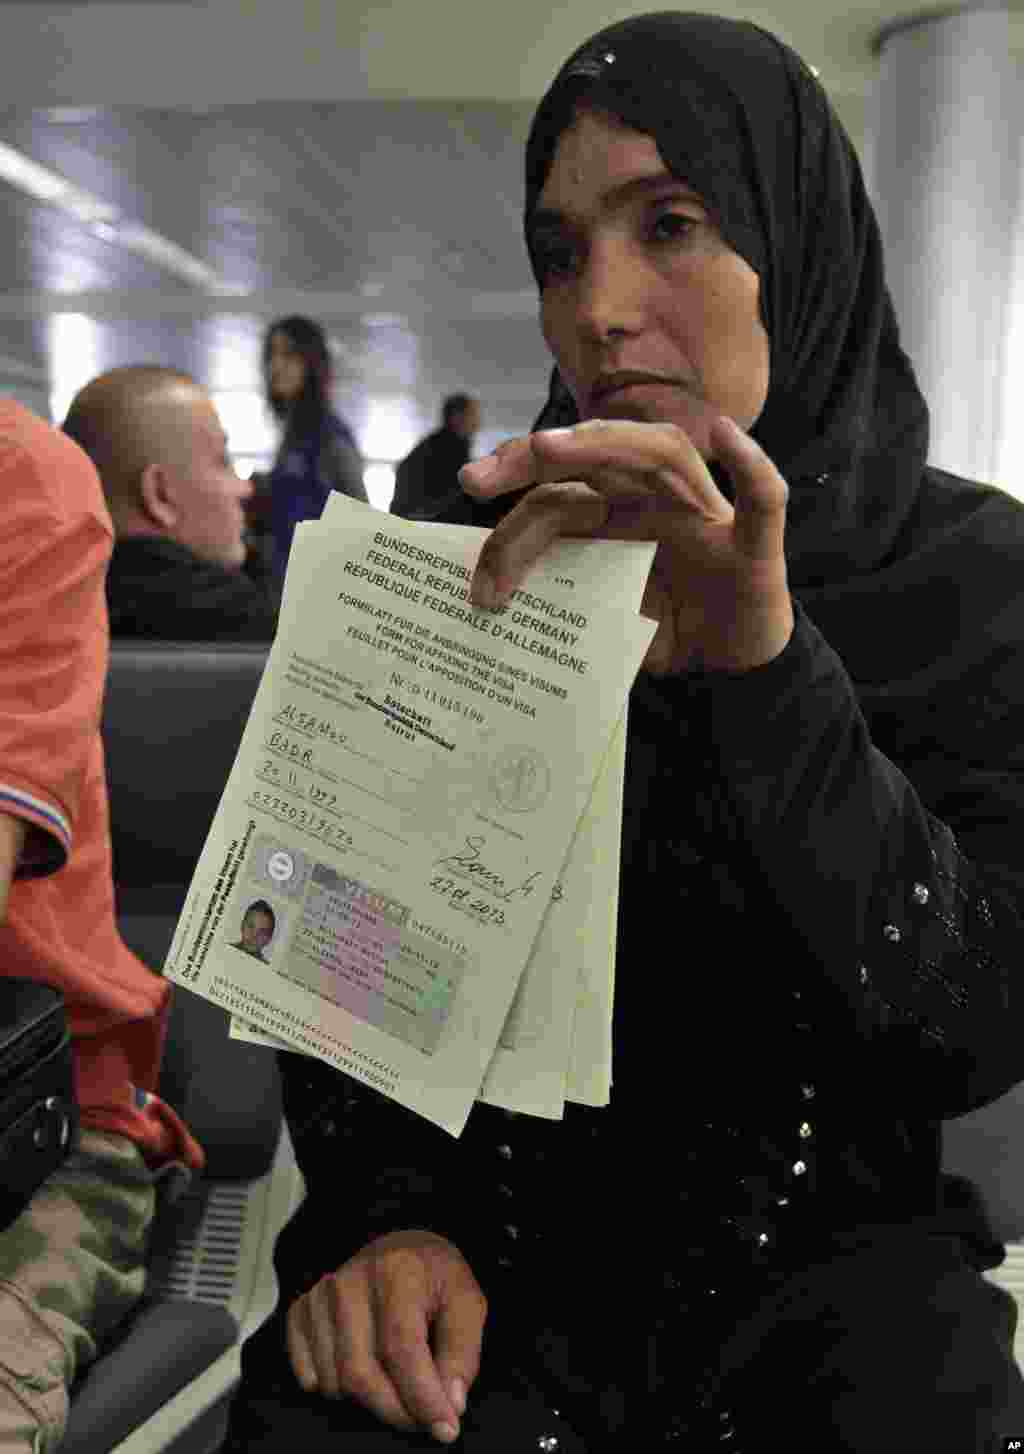 A Syrian refugee shows her immigration papers before boarding a flight to Germany for temporary relocation, at Rafik Hariri International Airport in Beirut, Lebanon, Sept. 11, 2013.